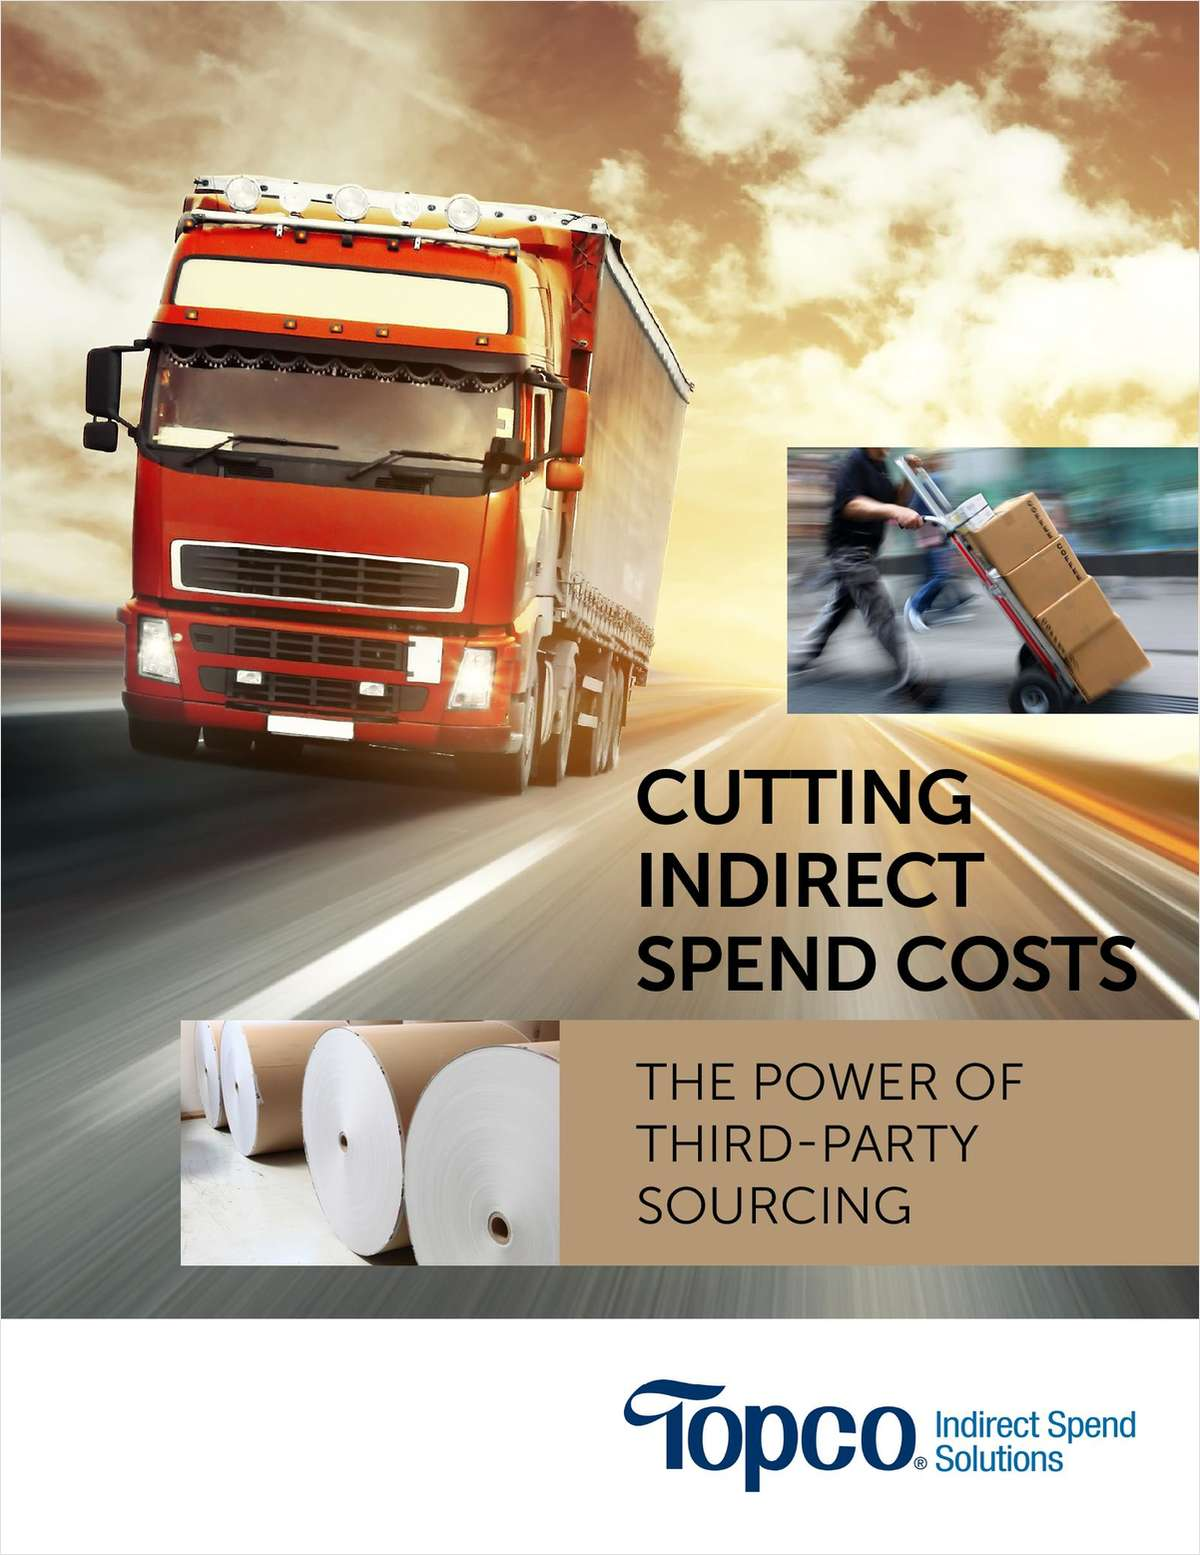 Cutting Indirect Spend Costs: The Power of Third-Party Sourcing